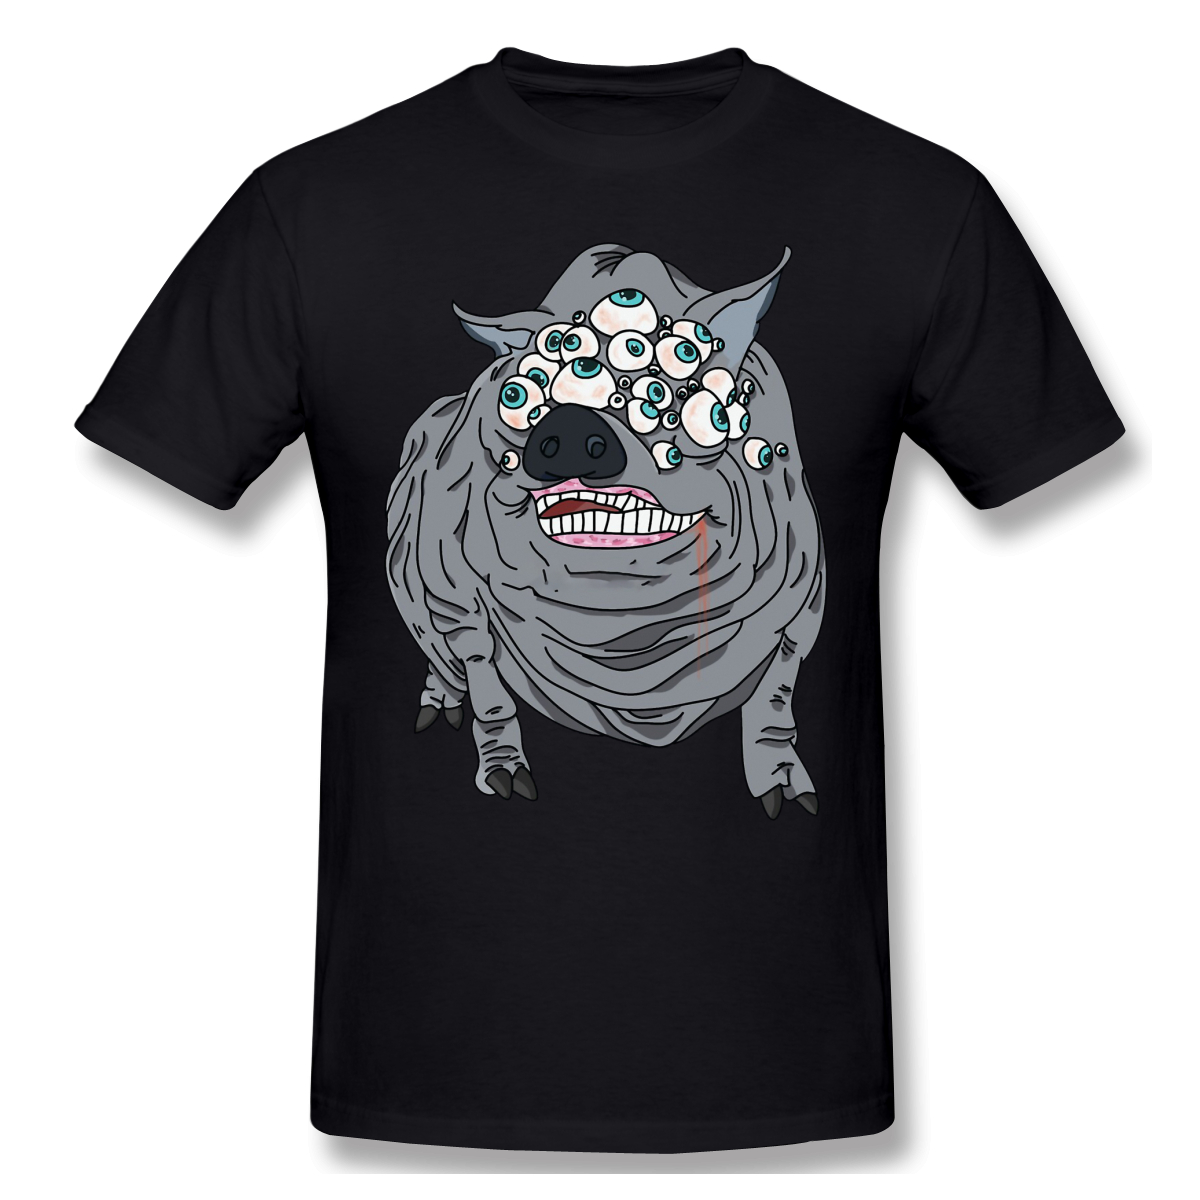 Maneater Boar Men's T-Shirt 100% Cotton Pattern Short Summer Sleeve Bloodborne ARPG games Casual Tshirt Gift Idea Tops image